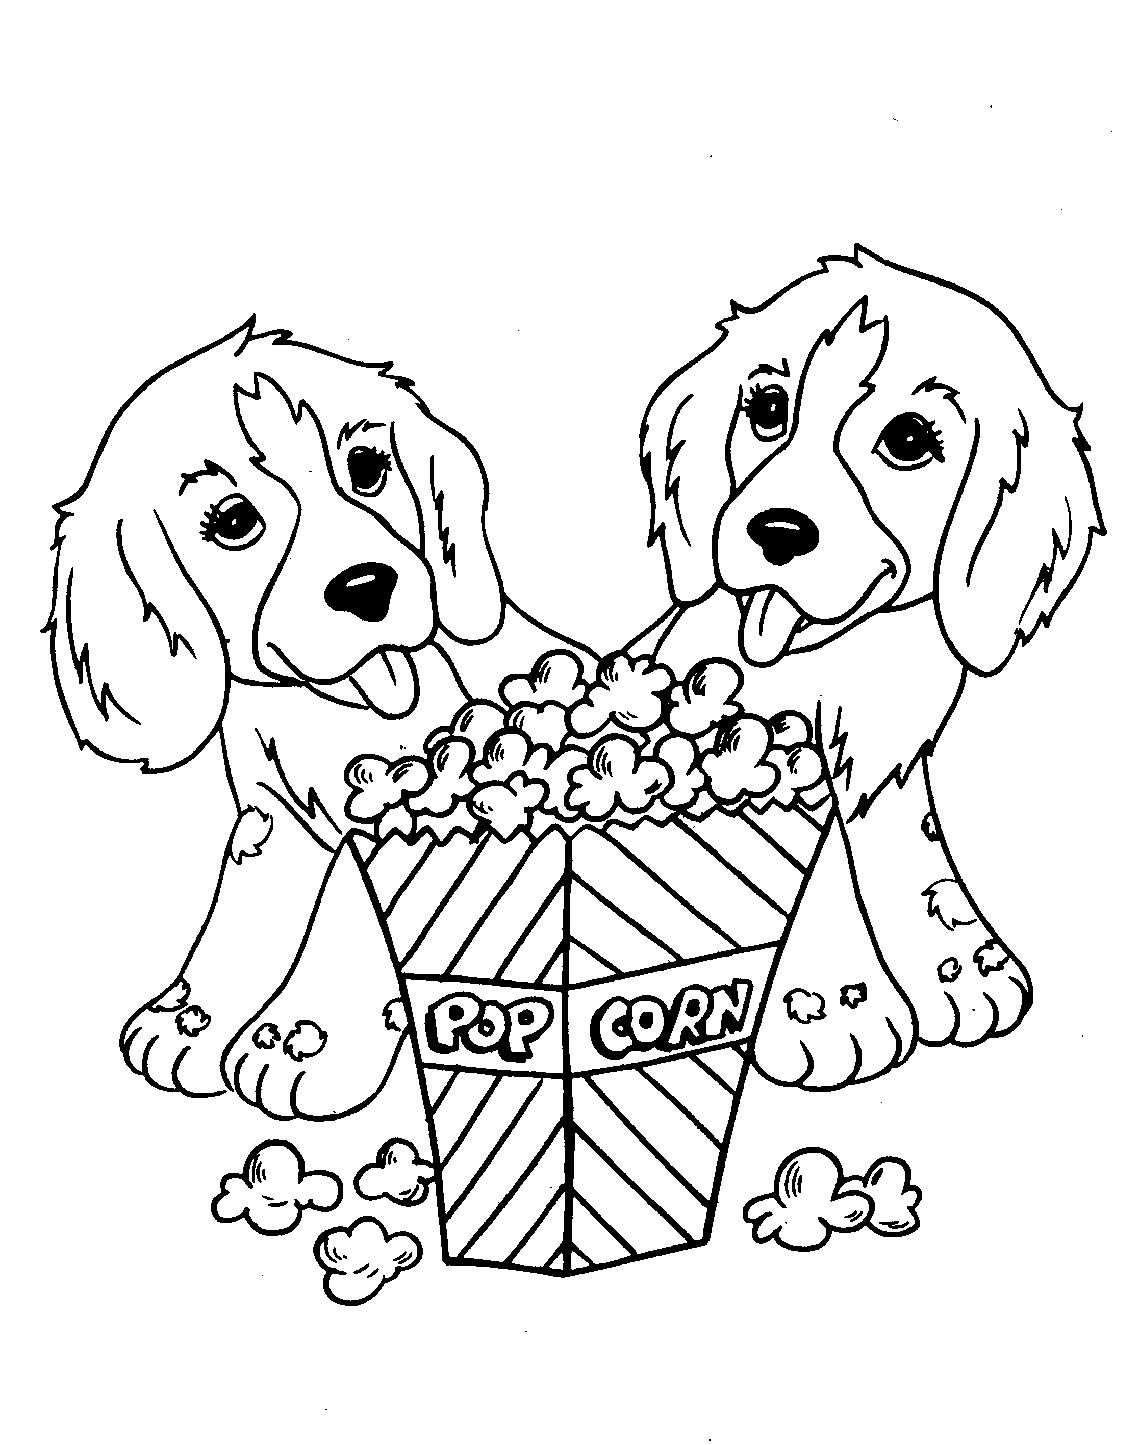 Coloring Pages Of Dogs And Puppies Free Coloring Pages Of Puppies One Please Coloring Pages Colori Puppy Coloring Pages Dog Coloring Page Animal Coloring Books